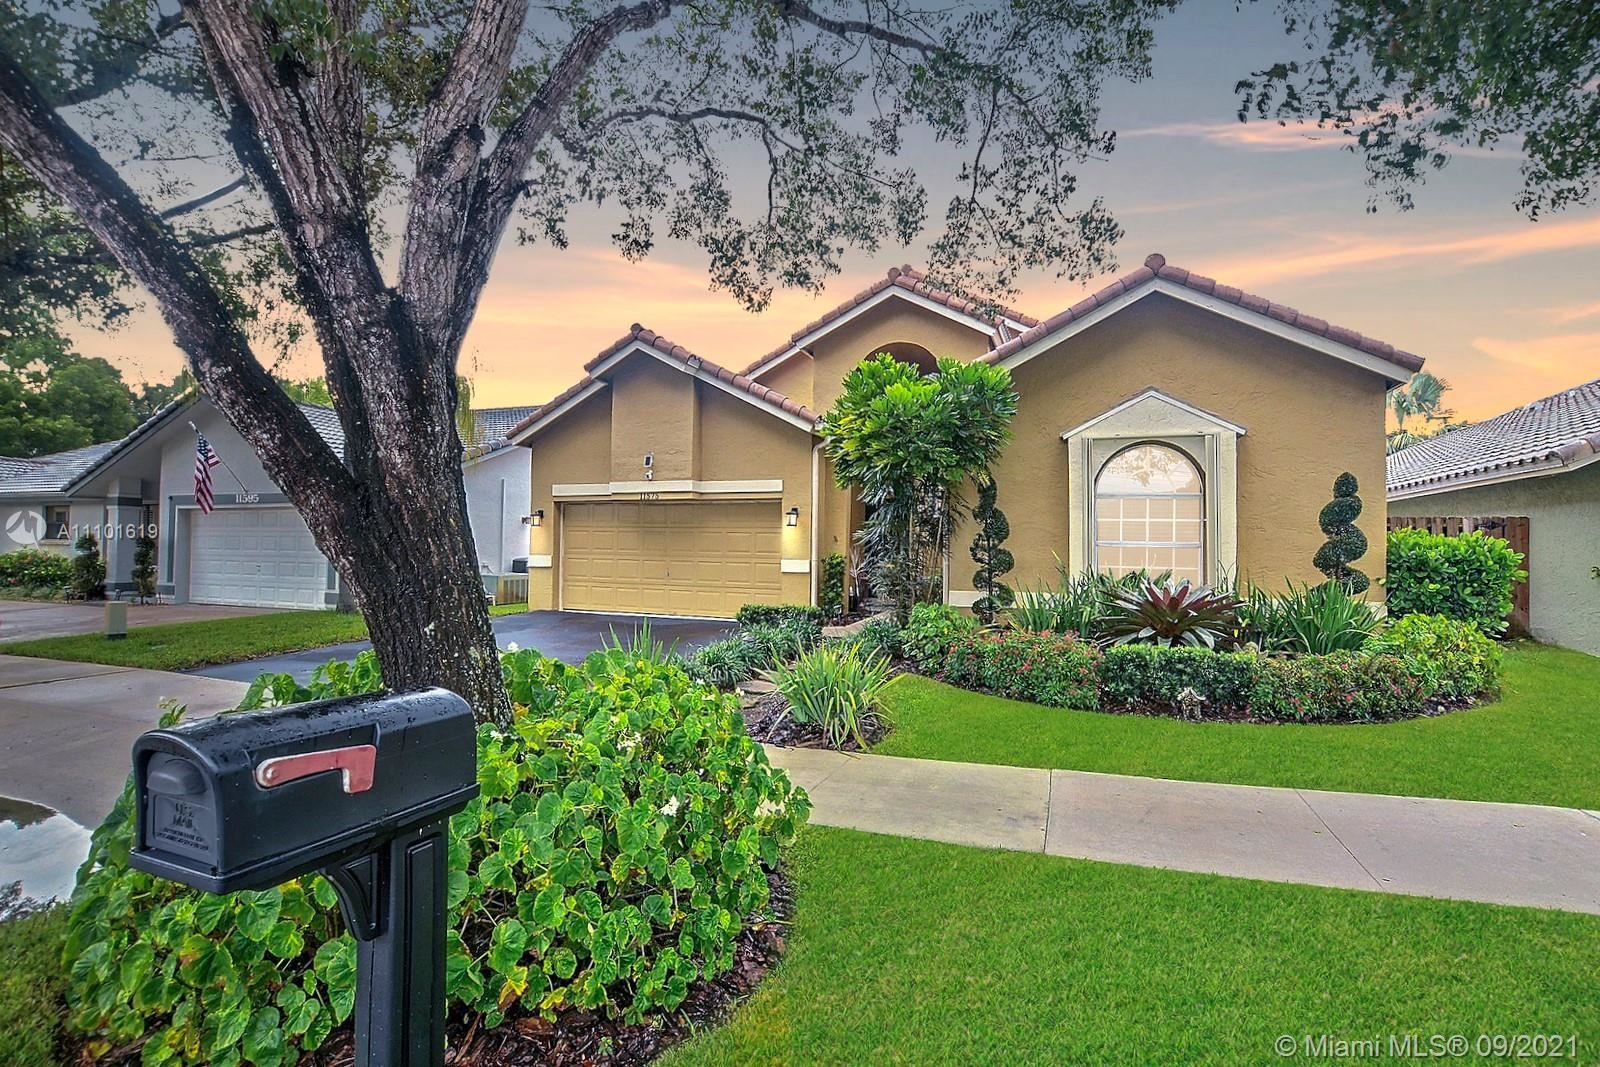 Photo of 11575 S Quayside Dr, Cooper City, FL 33026 (MLS # A11101619)